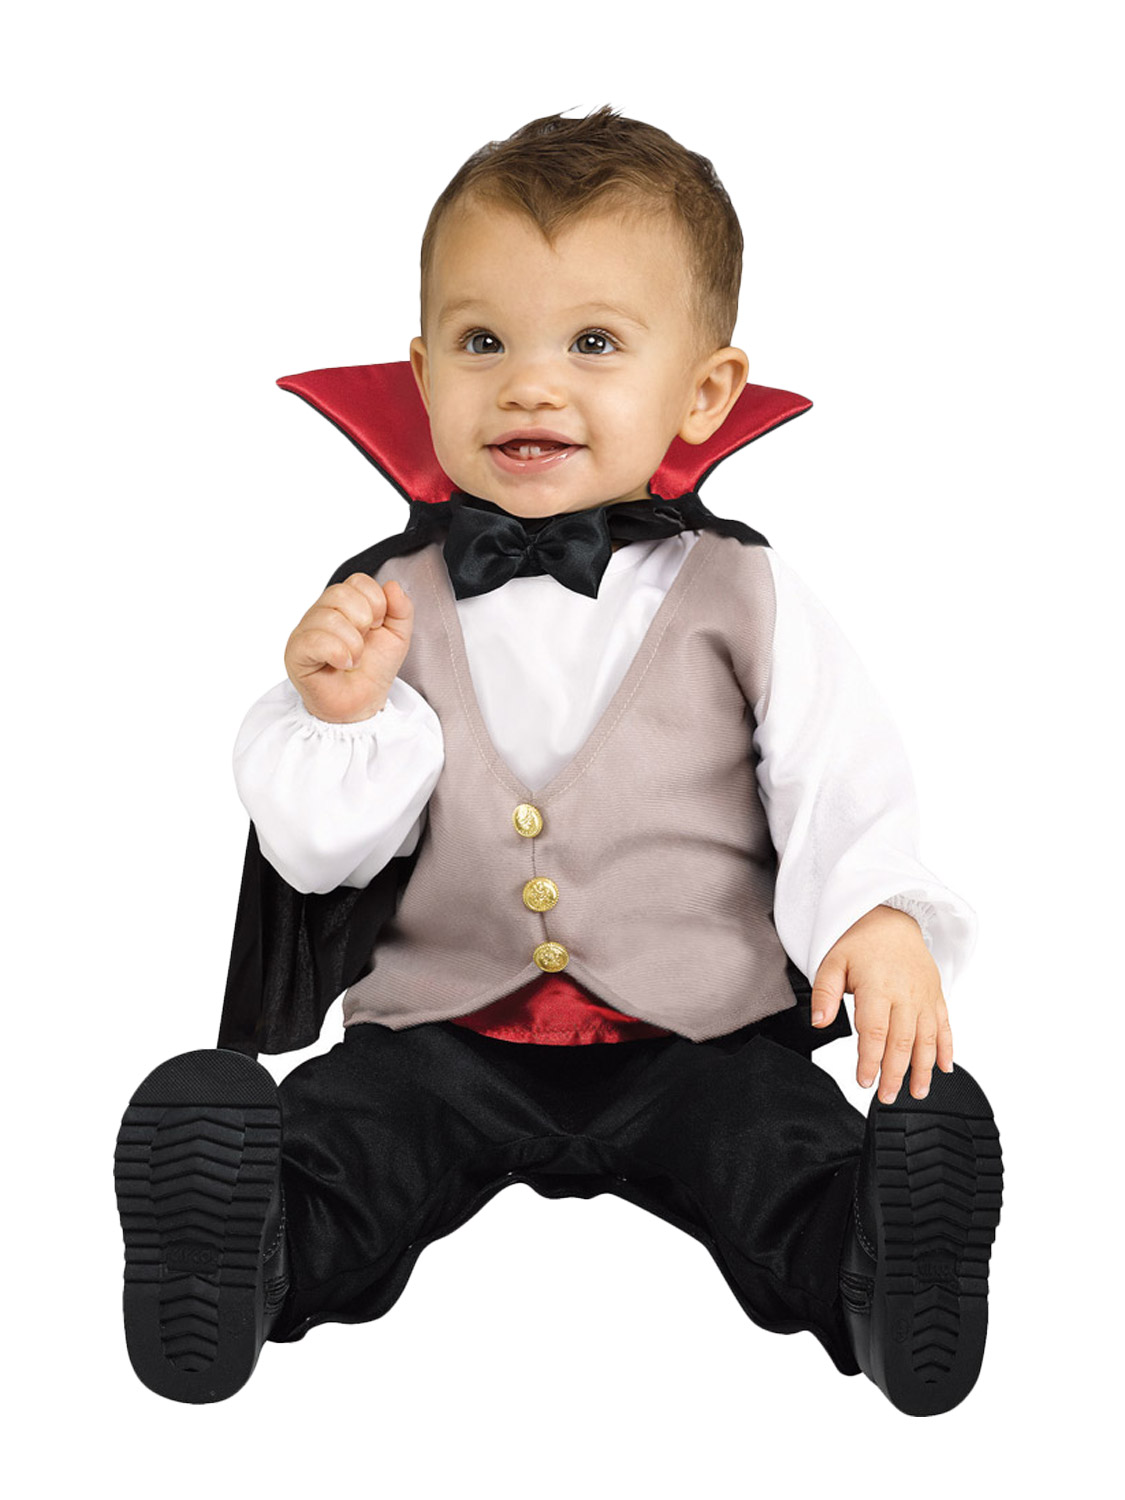 baby toddler halloween fancy dress vampire babygrow costume boys age 1 2 years ebay. Black Bedroom Furniture Sets. Home Design Ideas